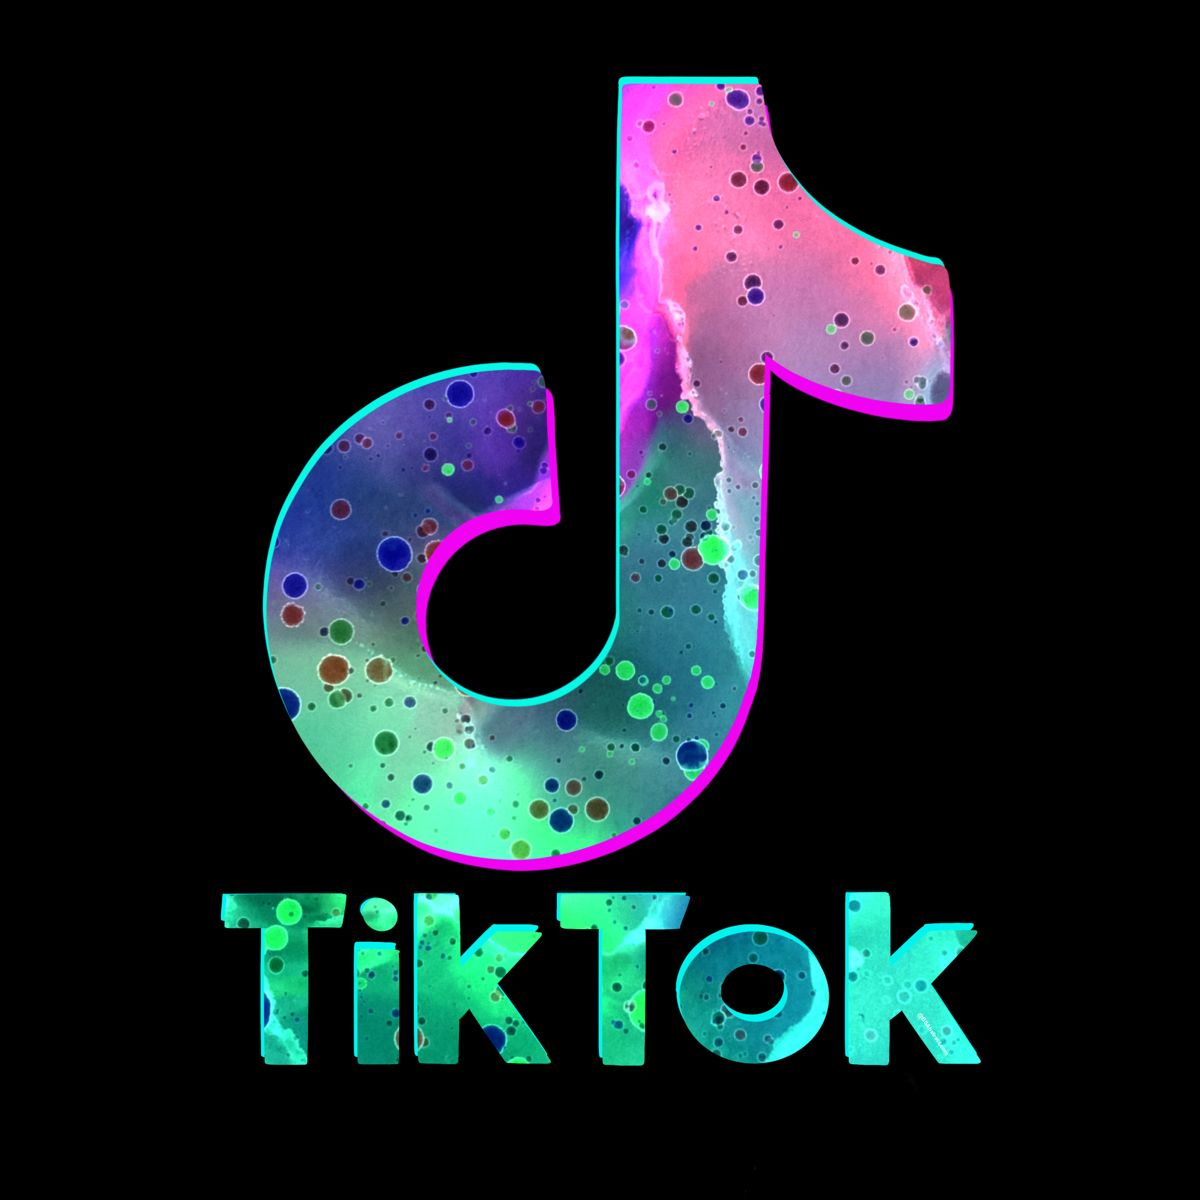 Inspired Tik Tok Logo For The Stem Lover That Loves To Love Tik Tok By Bsabstracts Redbubble In 2021 Black And White Picture Wall Watercolor Splatter Art Logo